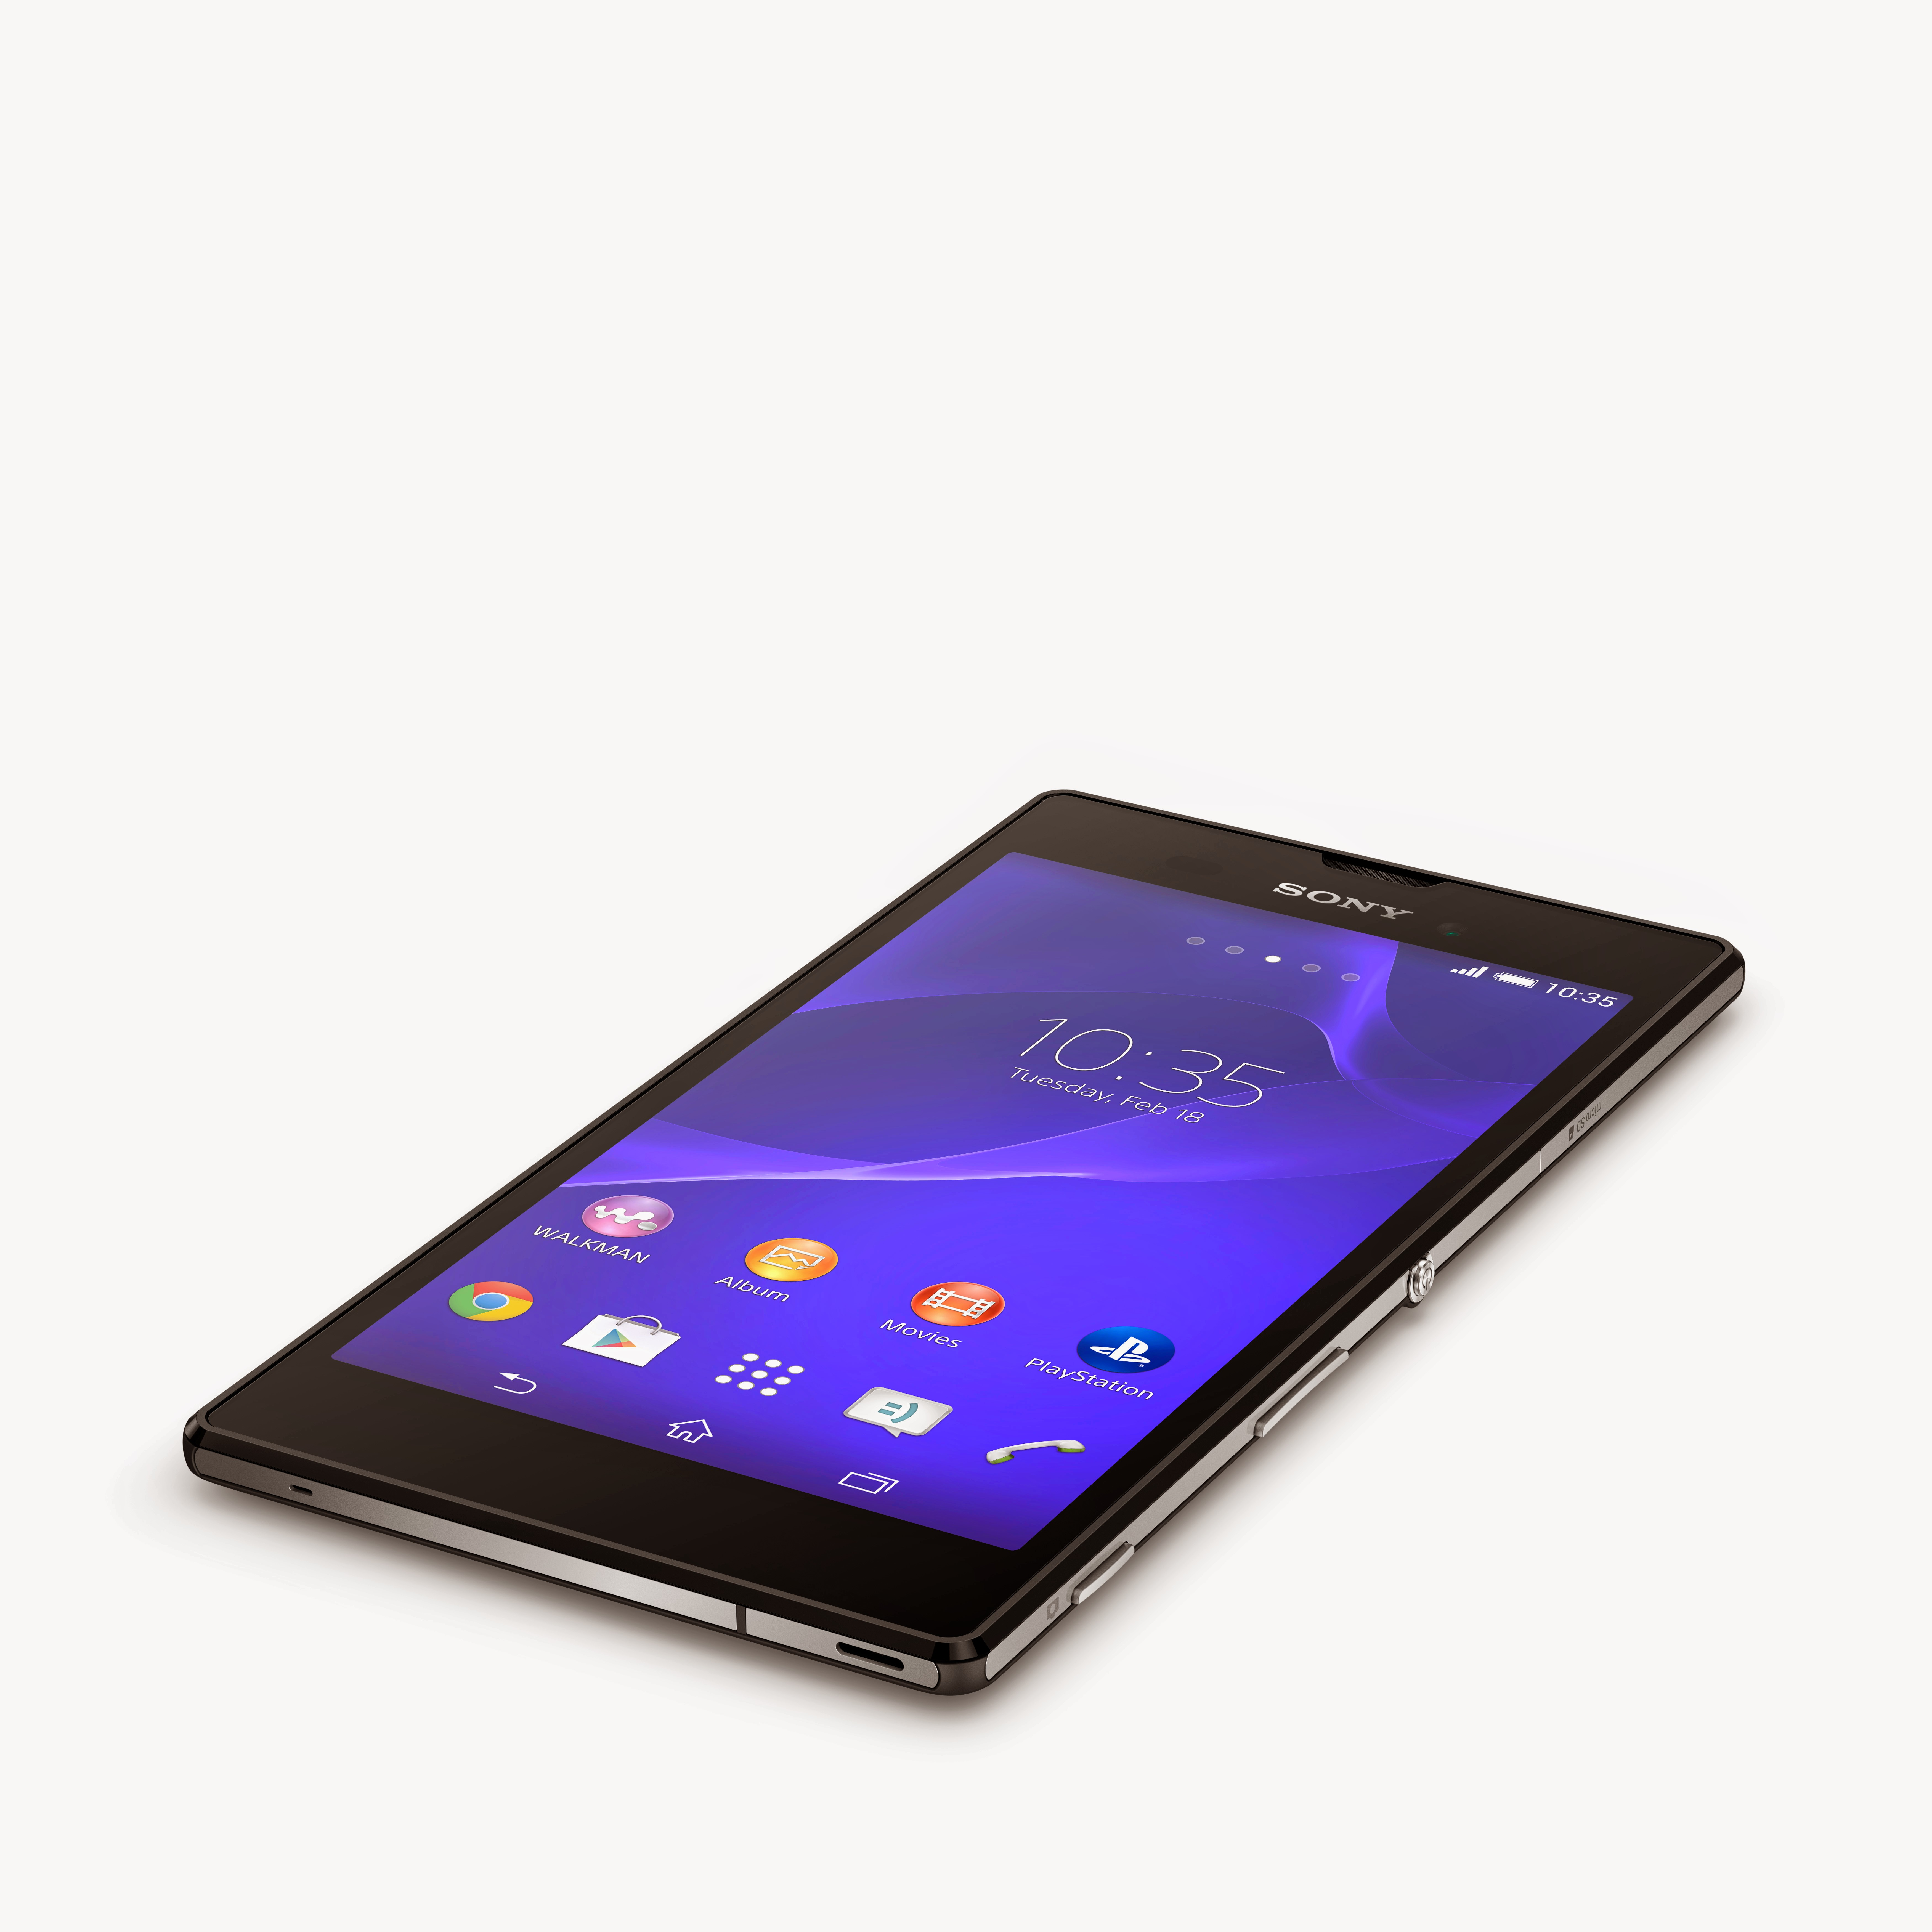 The Xperia T3 also features a Xperia T3